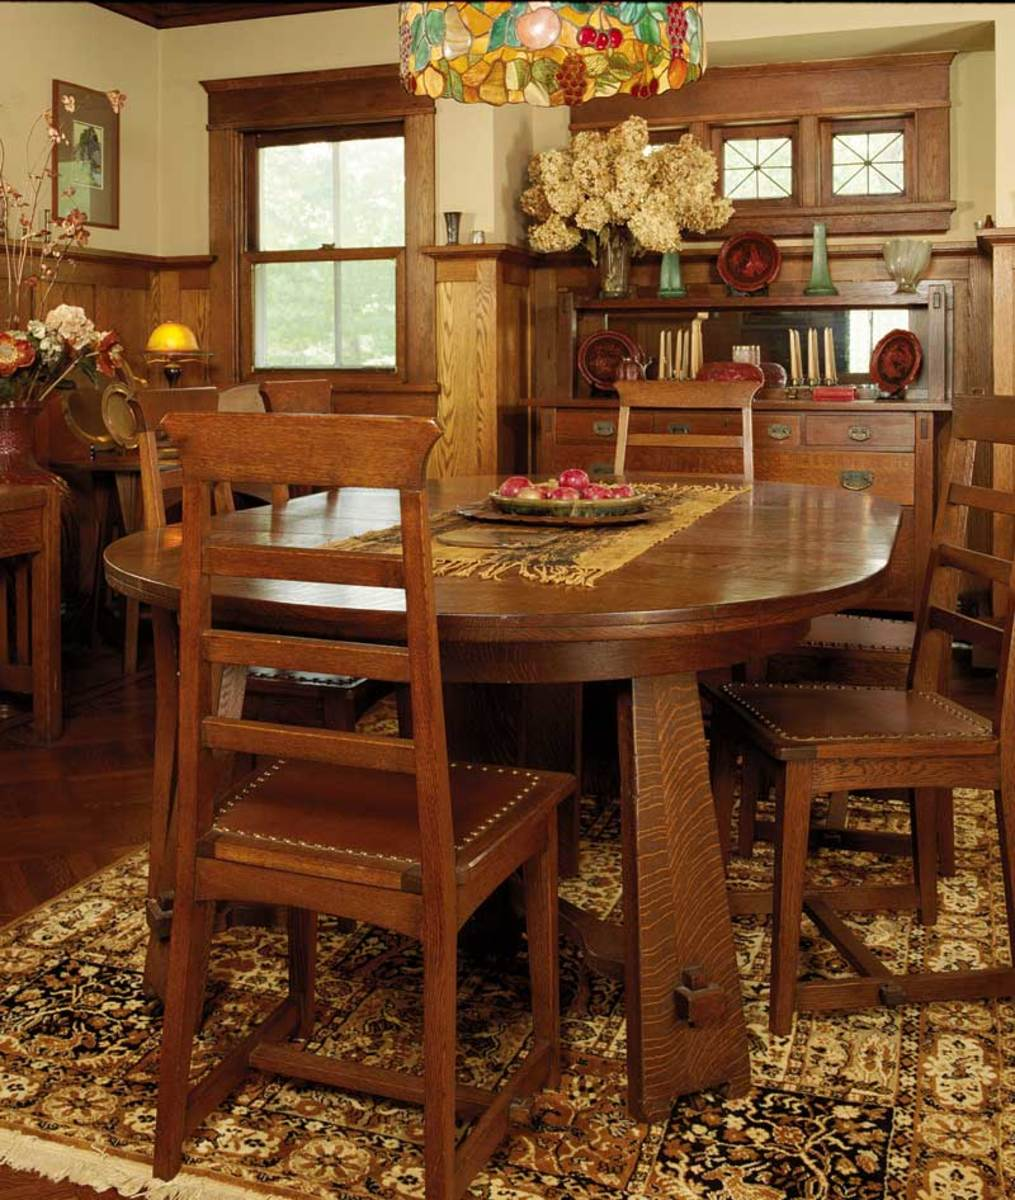 Oak furniture and a period palette make this 1915 dining room cozy. The table and chair are unsigned antiques; the antique sideboard is a Stickley Brothers piece. Photo: Dan Mayers